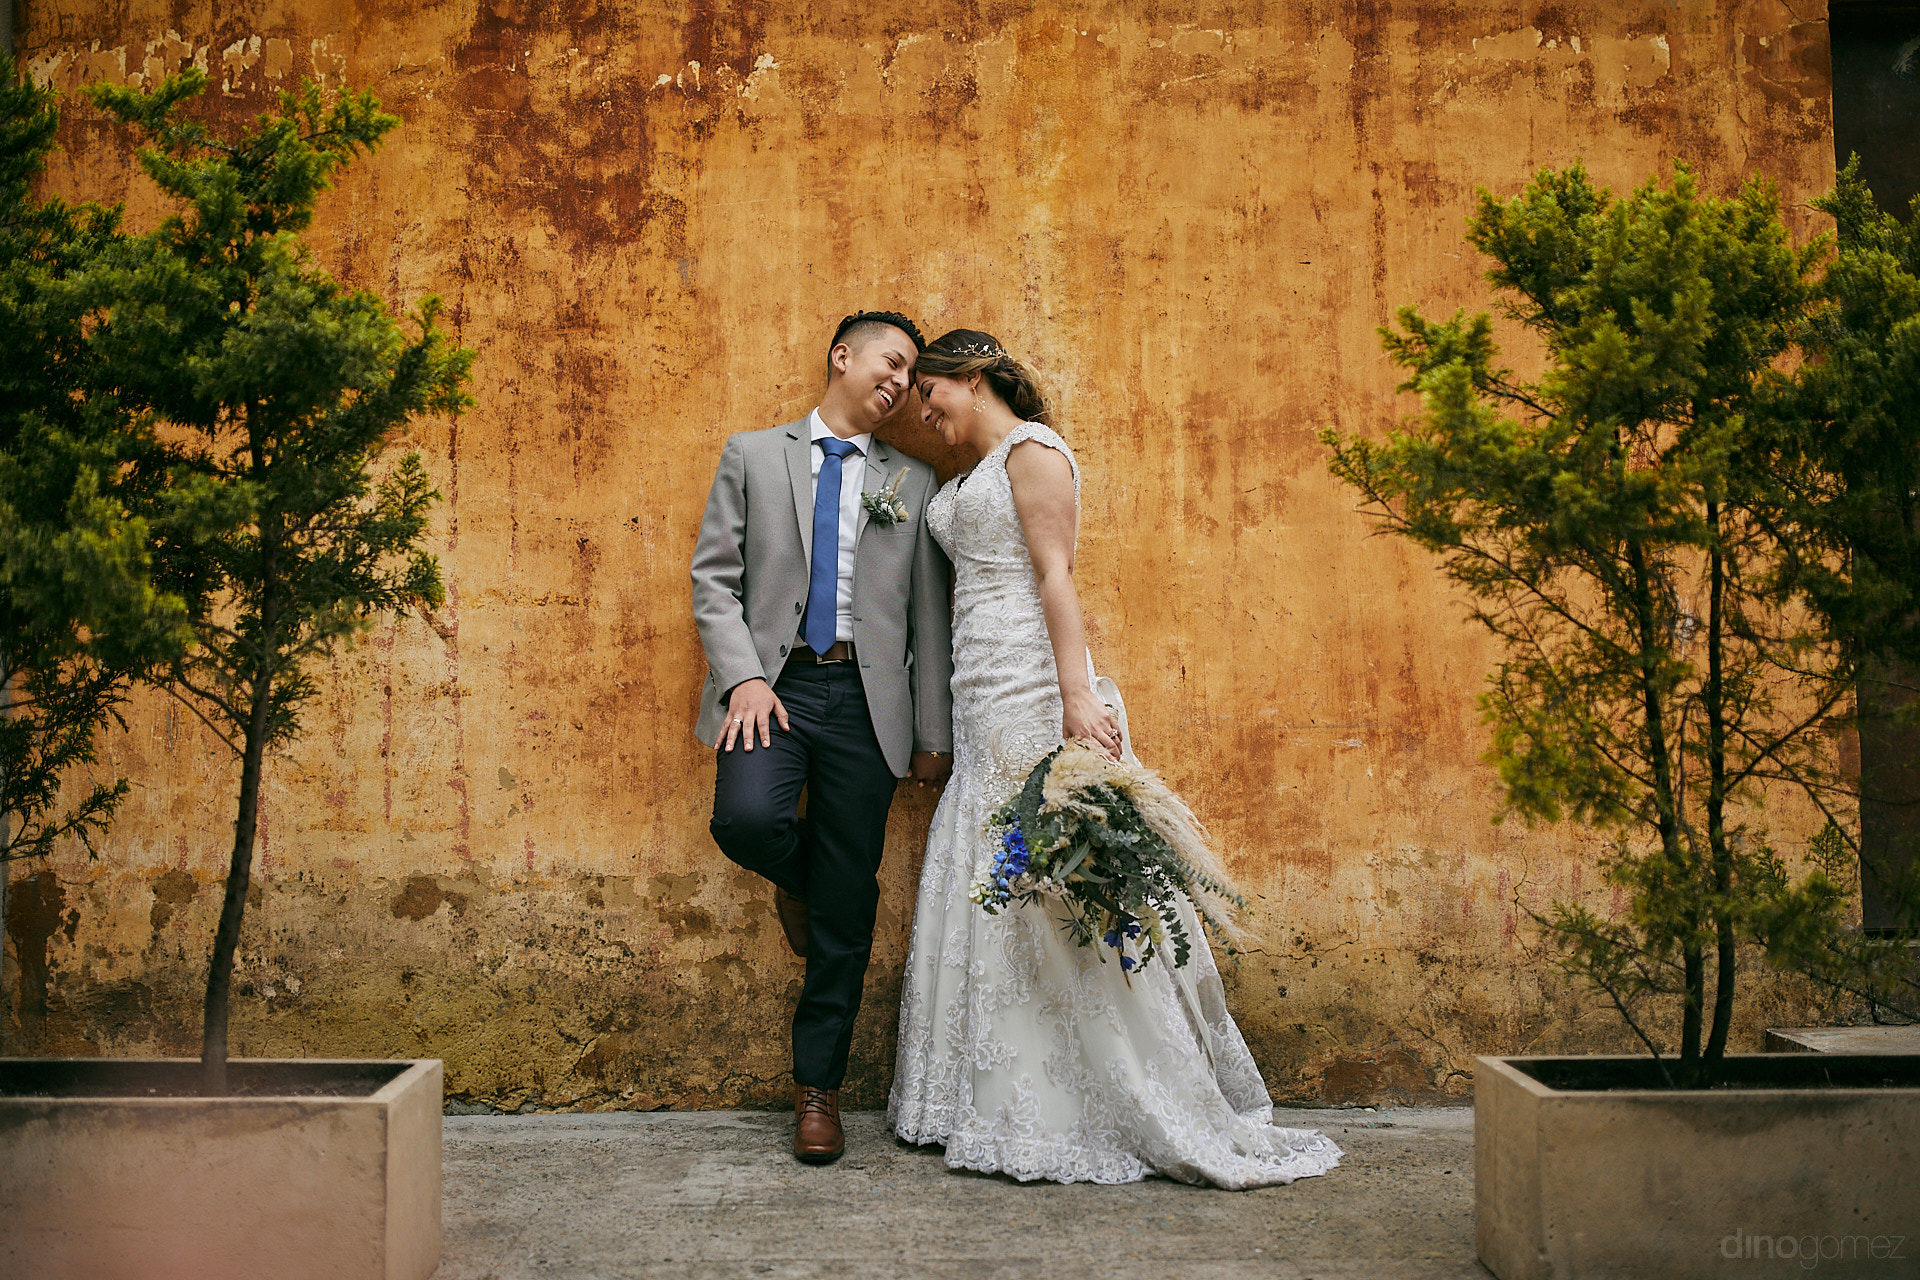 Dino Gomez Is A Natural Photographer Who Understands That Your Wedding Day Is About Family And The People You Love. Let Him Capture Your Natural Smiles, Genuine Hugs, And Loving Moments On Your Wedding Day So You Can Cherish Them For Years To Come.